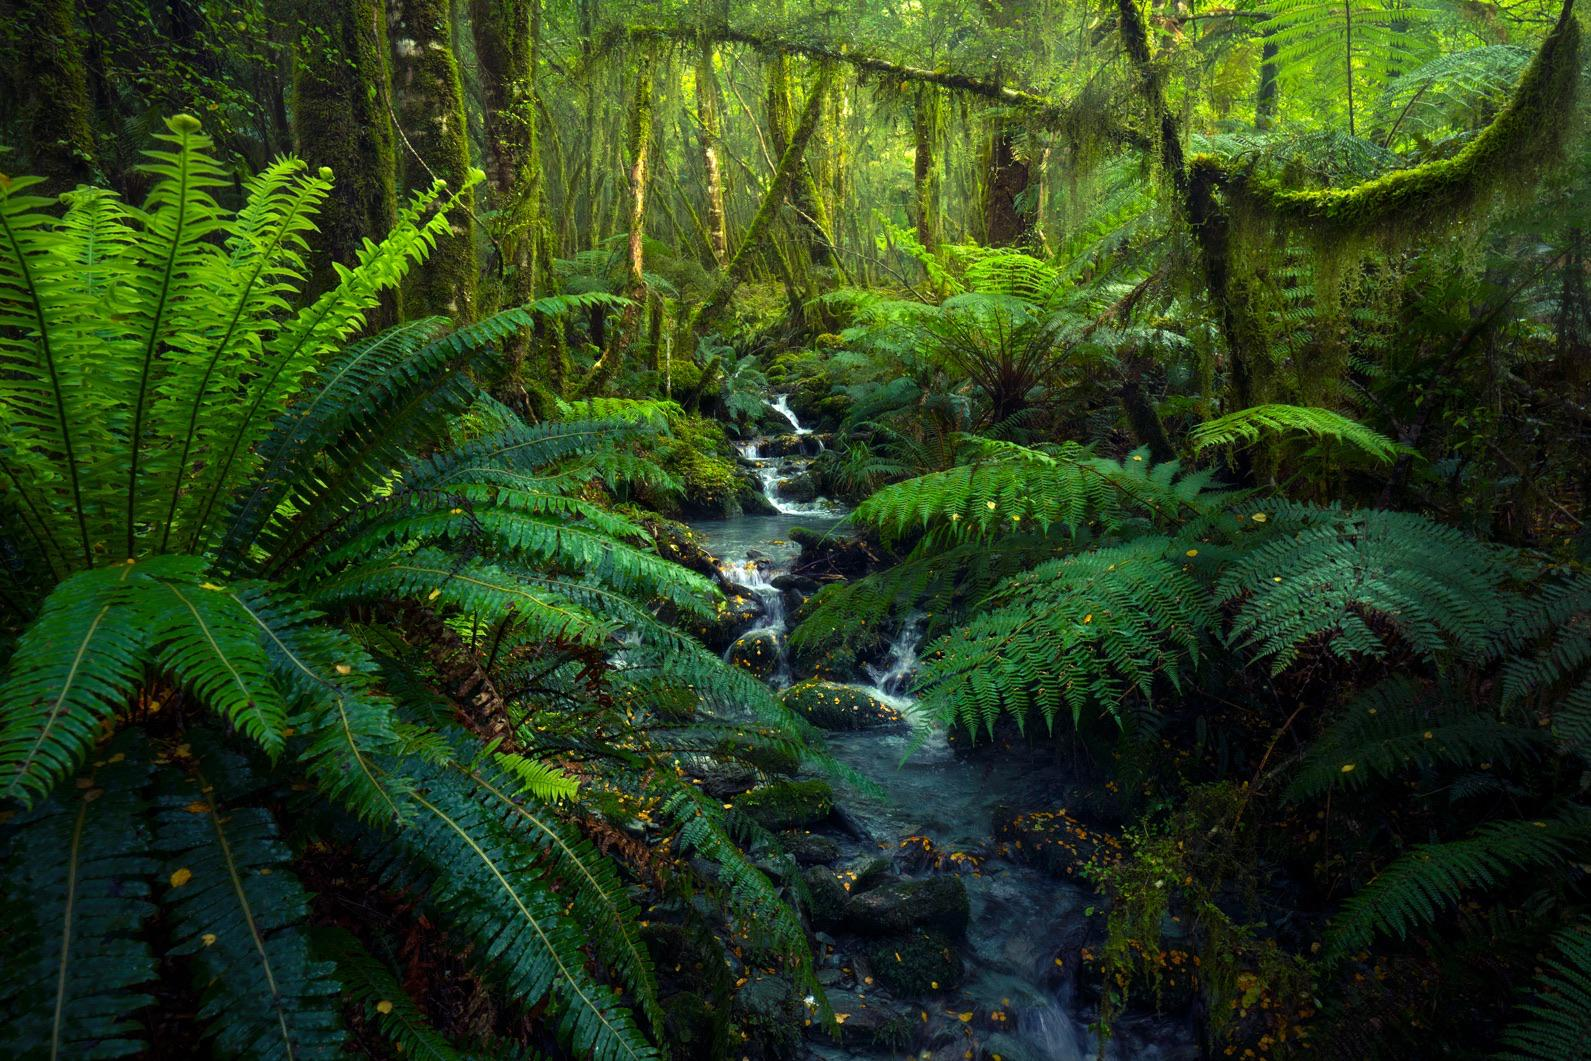 50 shades of green. Fiordland, New Zealand